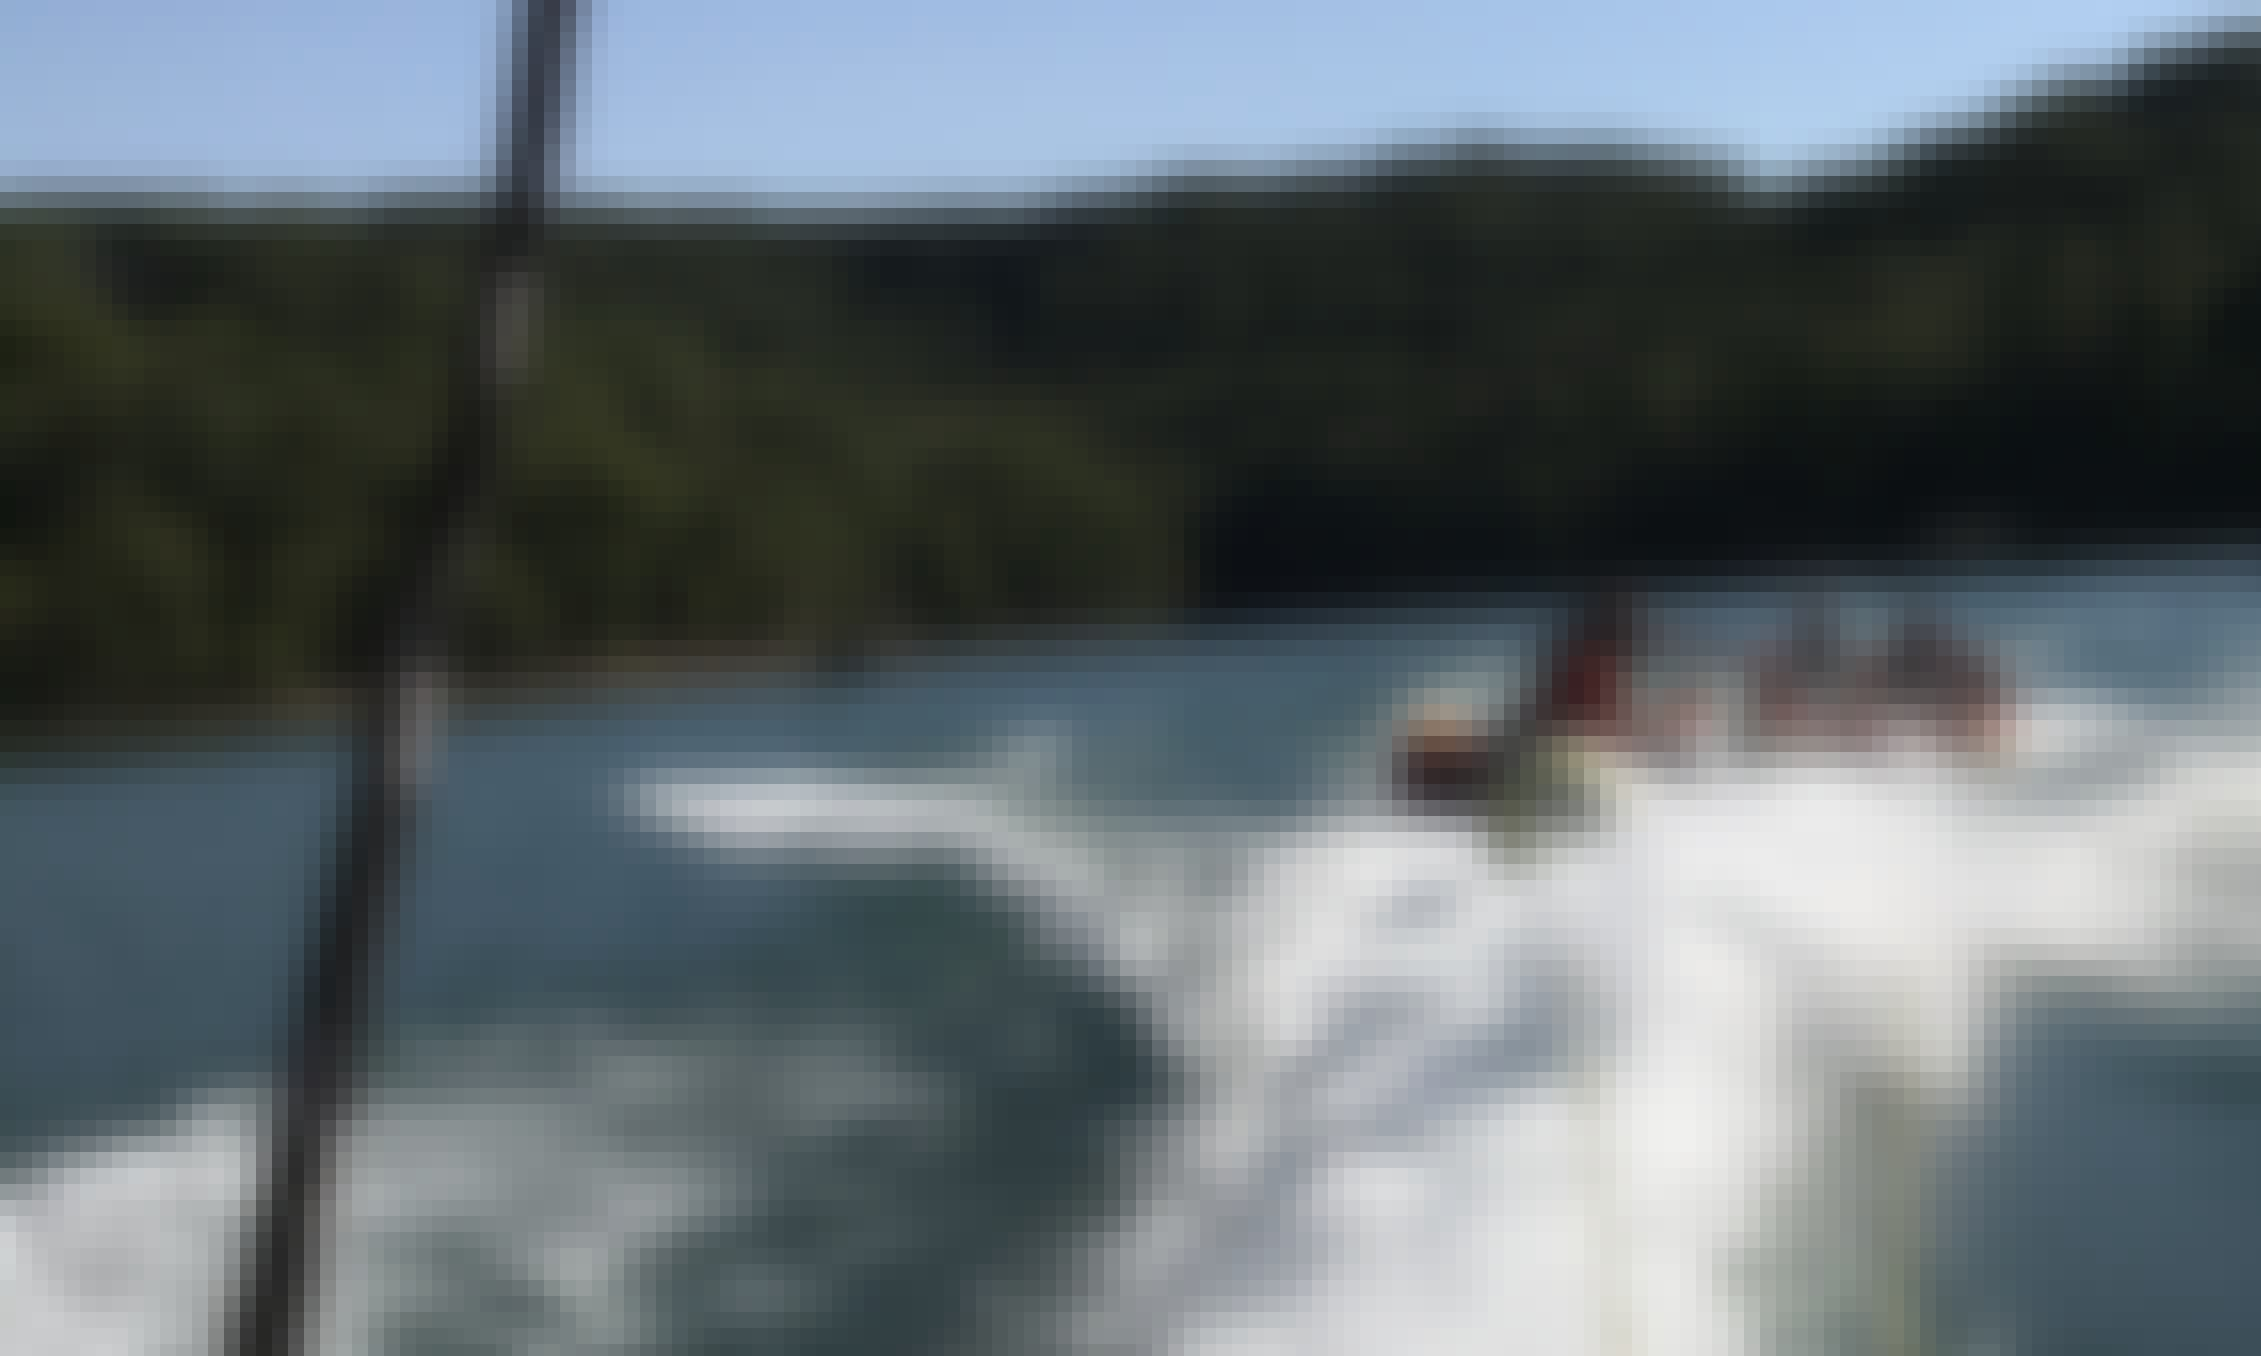 Seadoo Wake Boat for Rent in Centerton, Arkansas.